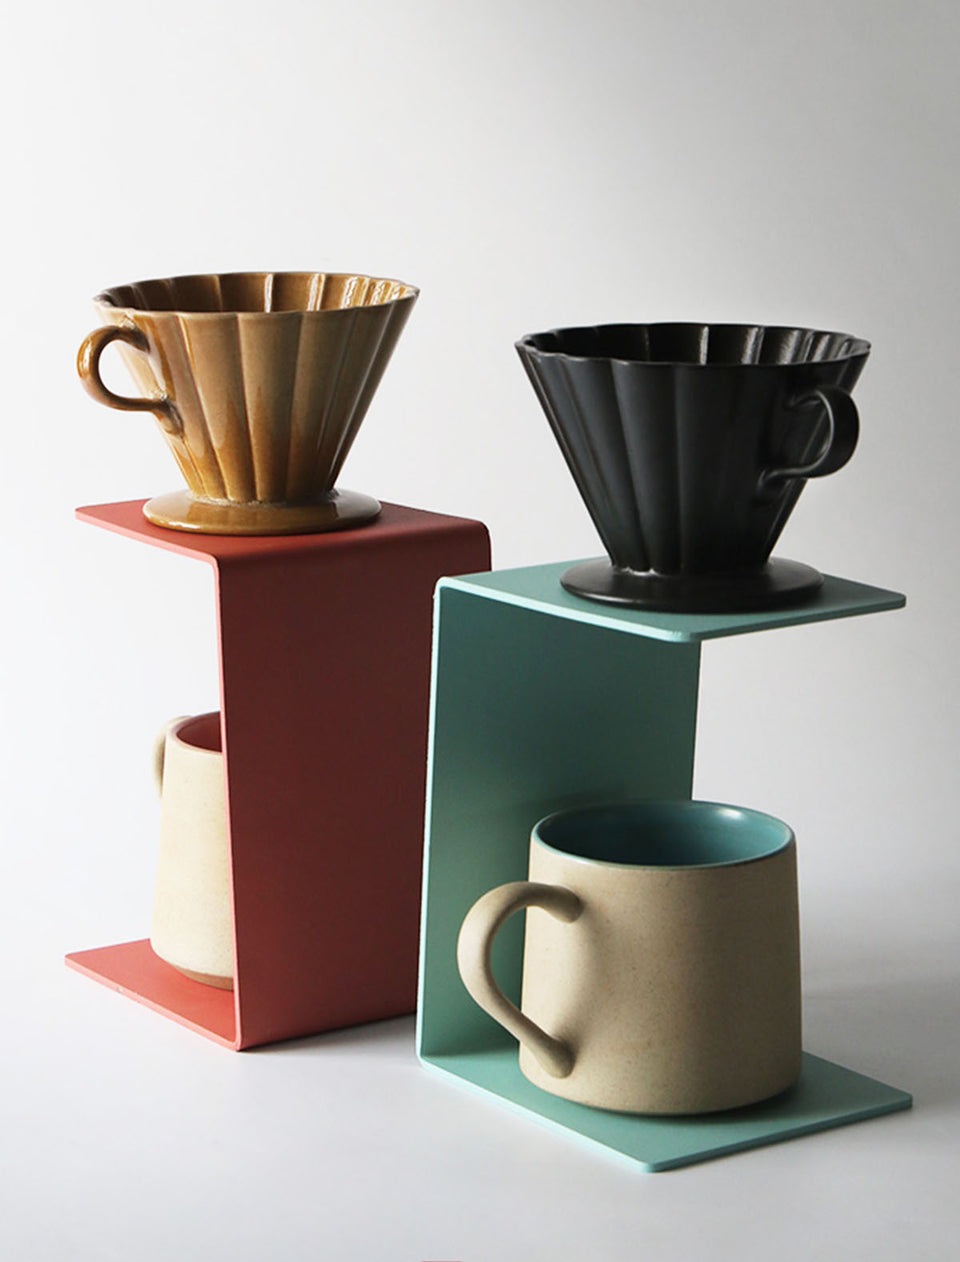 Handmade Modern Pour-Over Coffee Dripper Stand